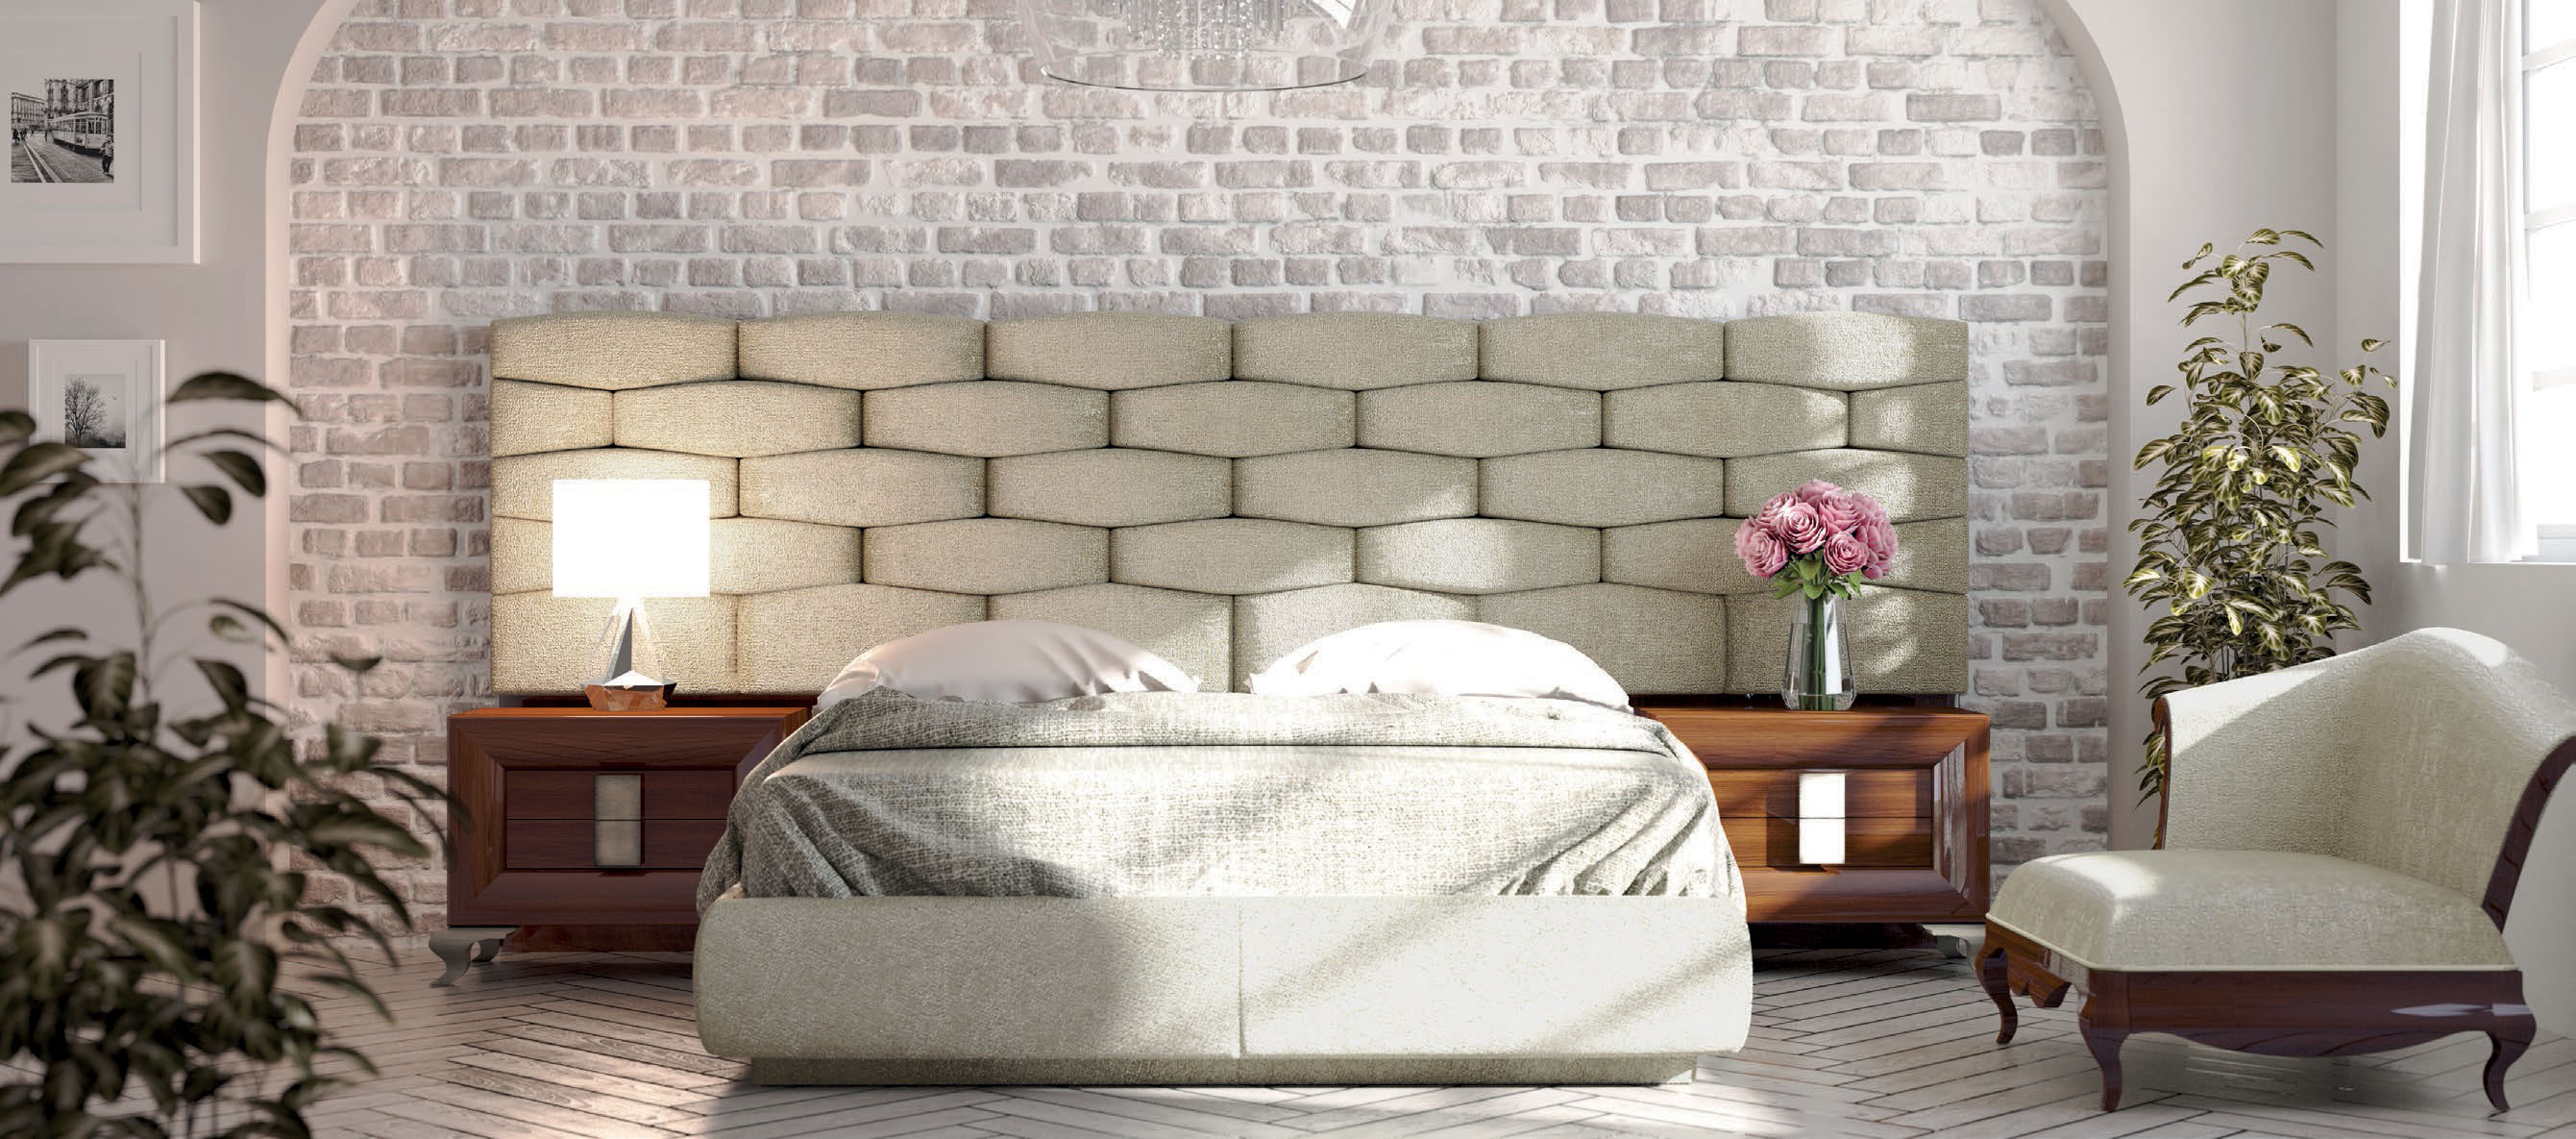 Brands Franco Furniture Bedrooms vol2, Spain DOR 104